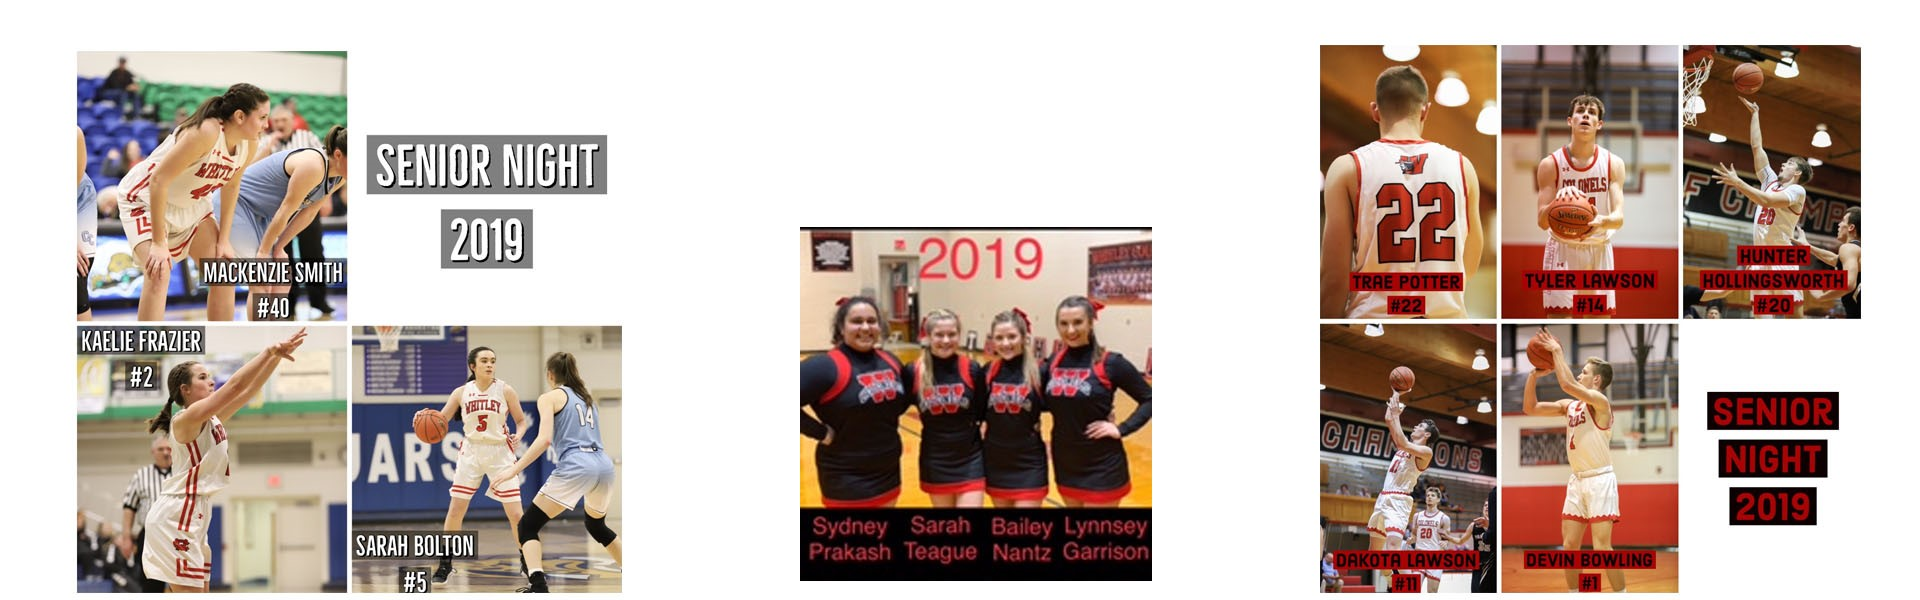 WCHS Senior Night 2019